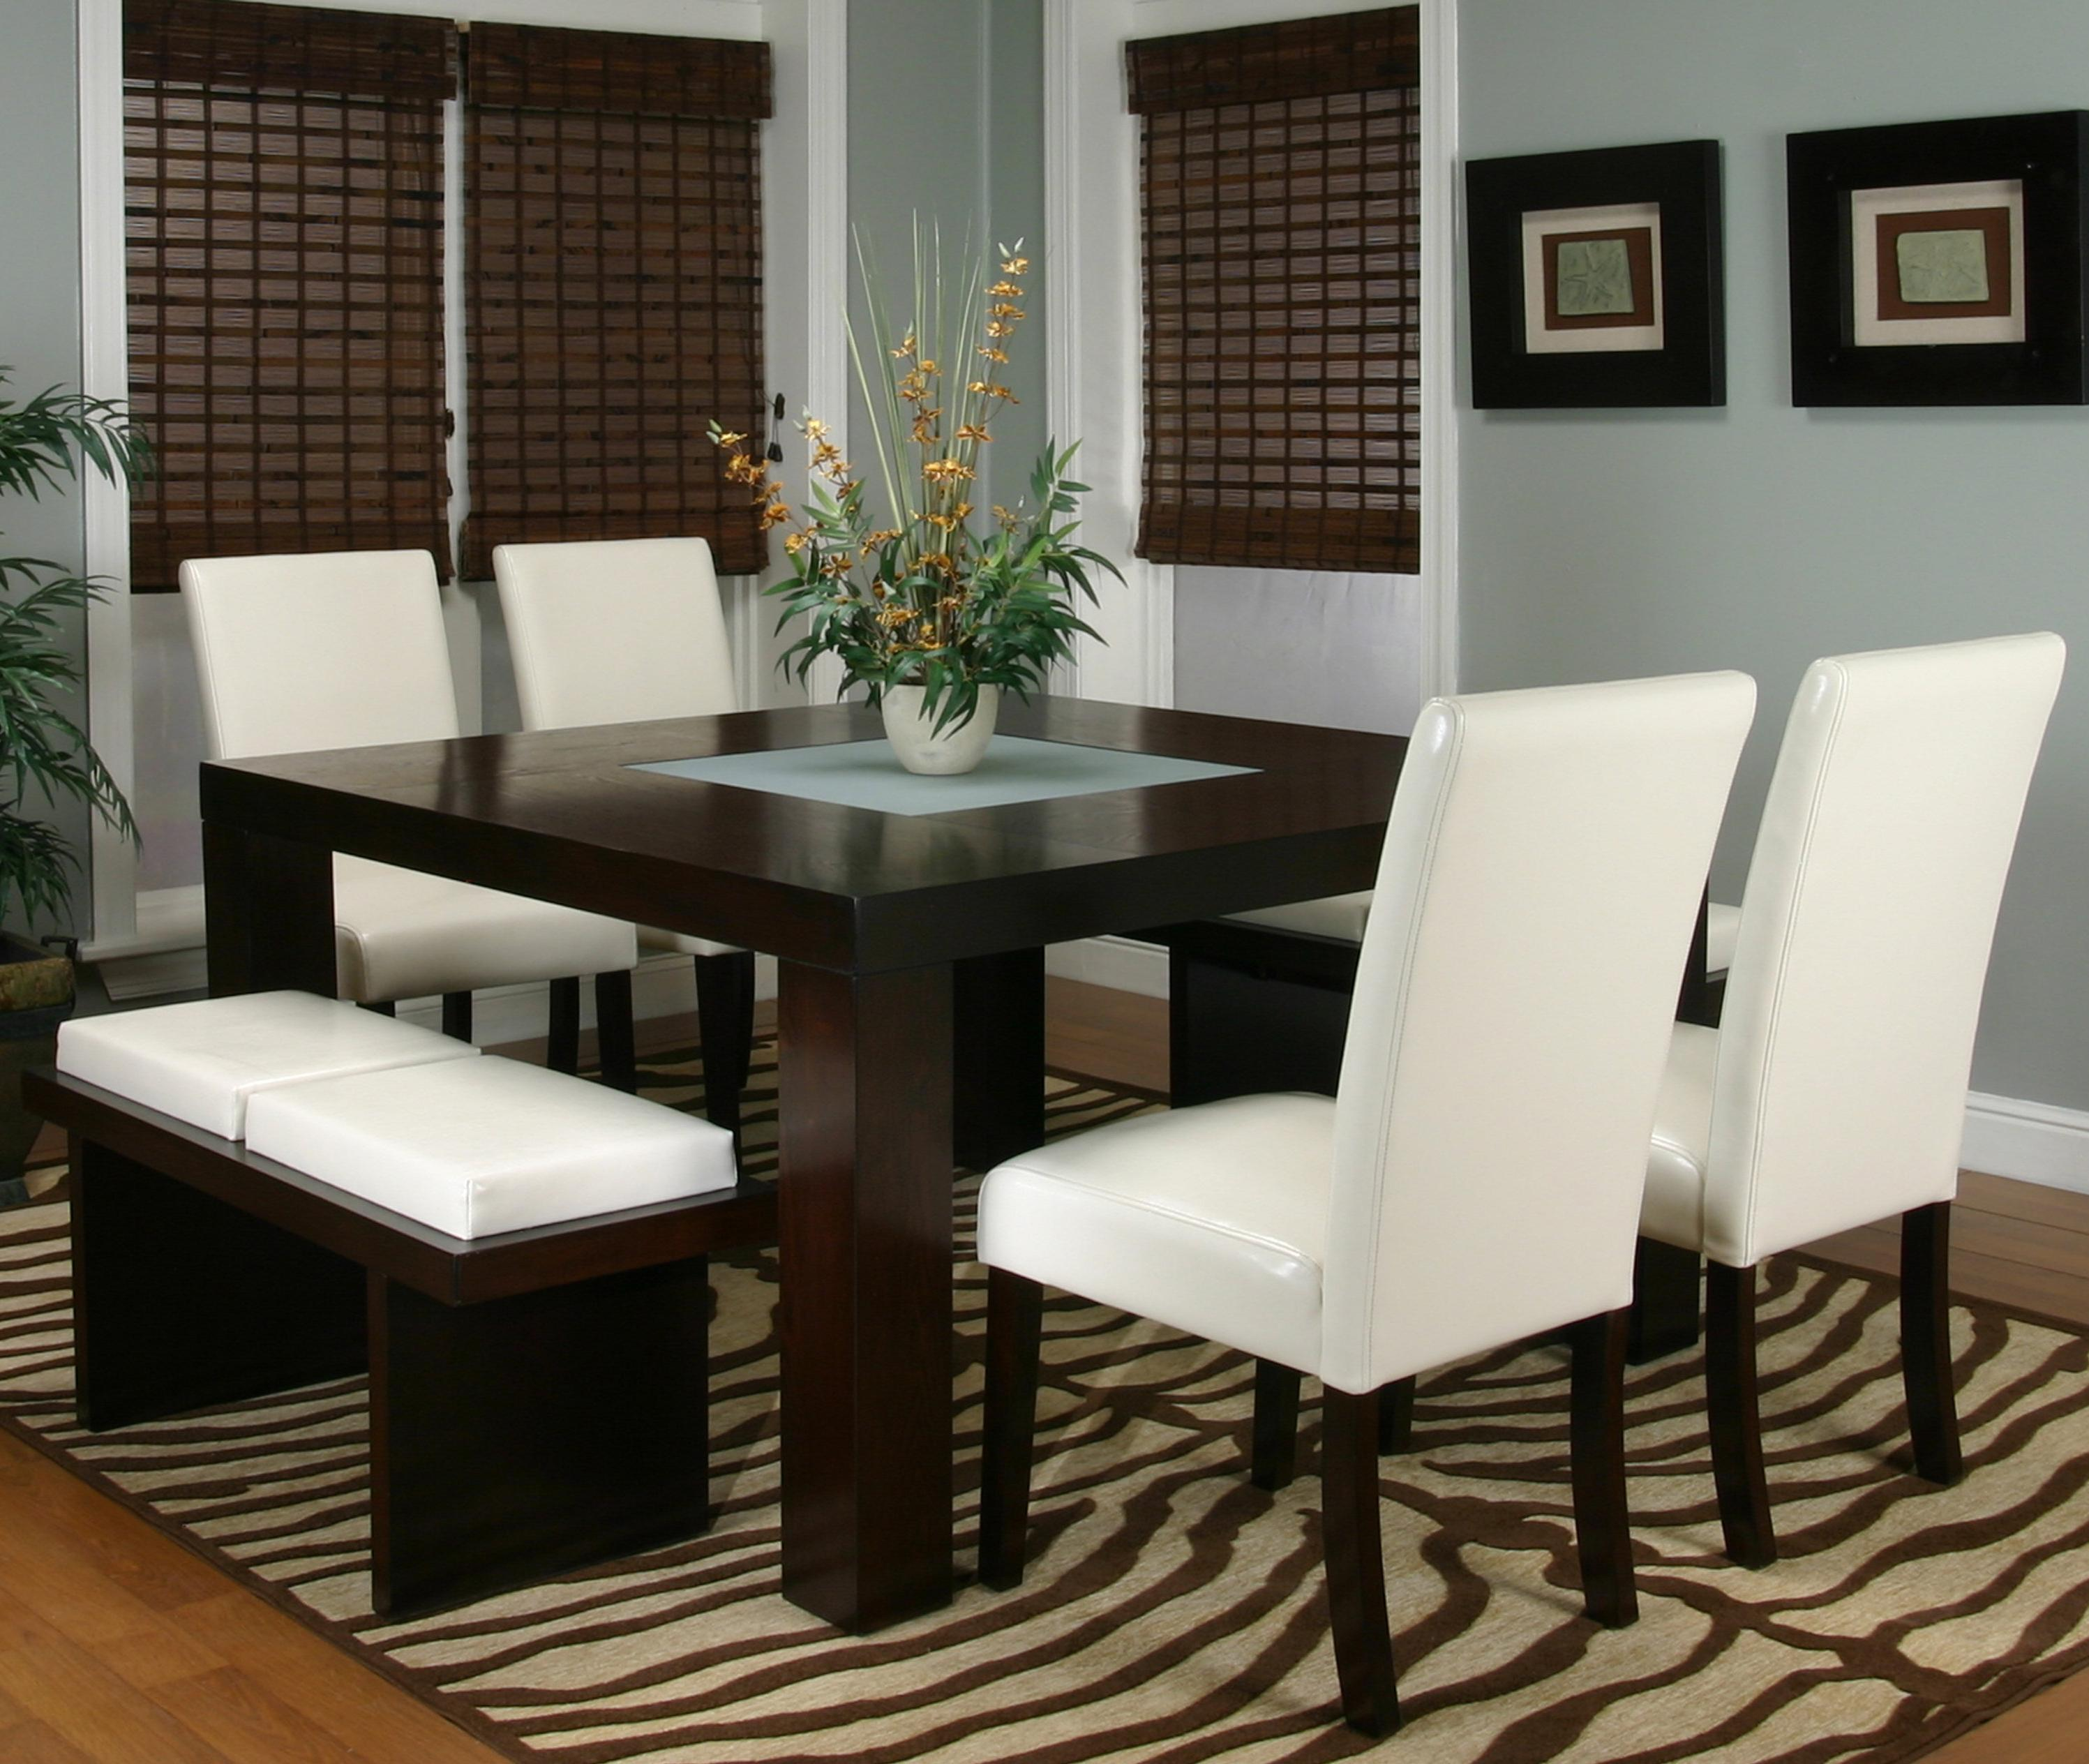 Square Dining Table with Frosted Glass Insert by Cramco Inc